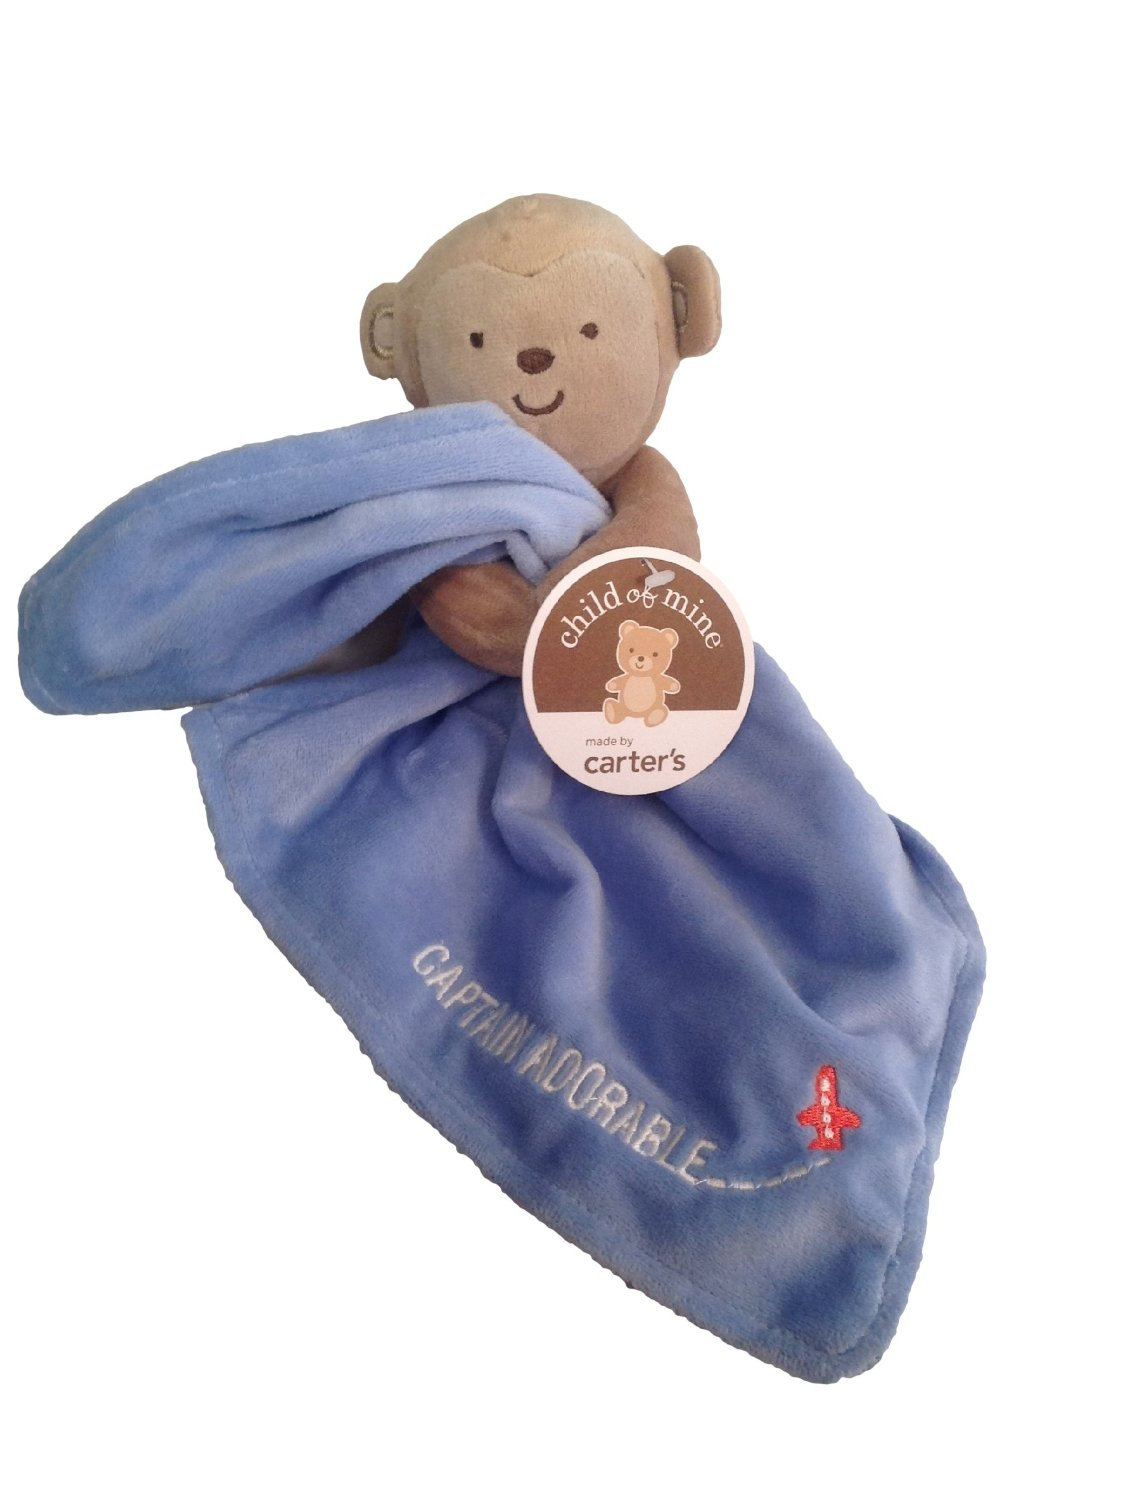 Carter's Baby Boys Blue Monkey Snuggle Security Blanket, Lovey, Lovie